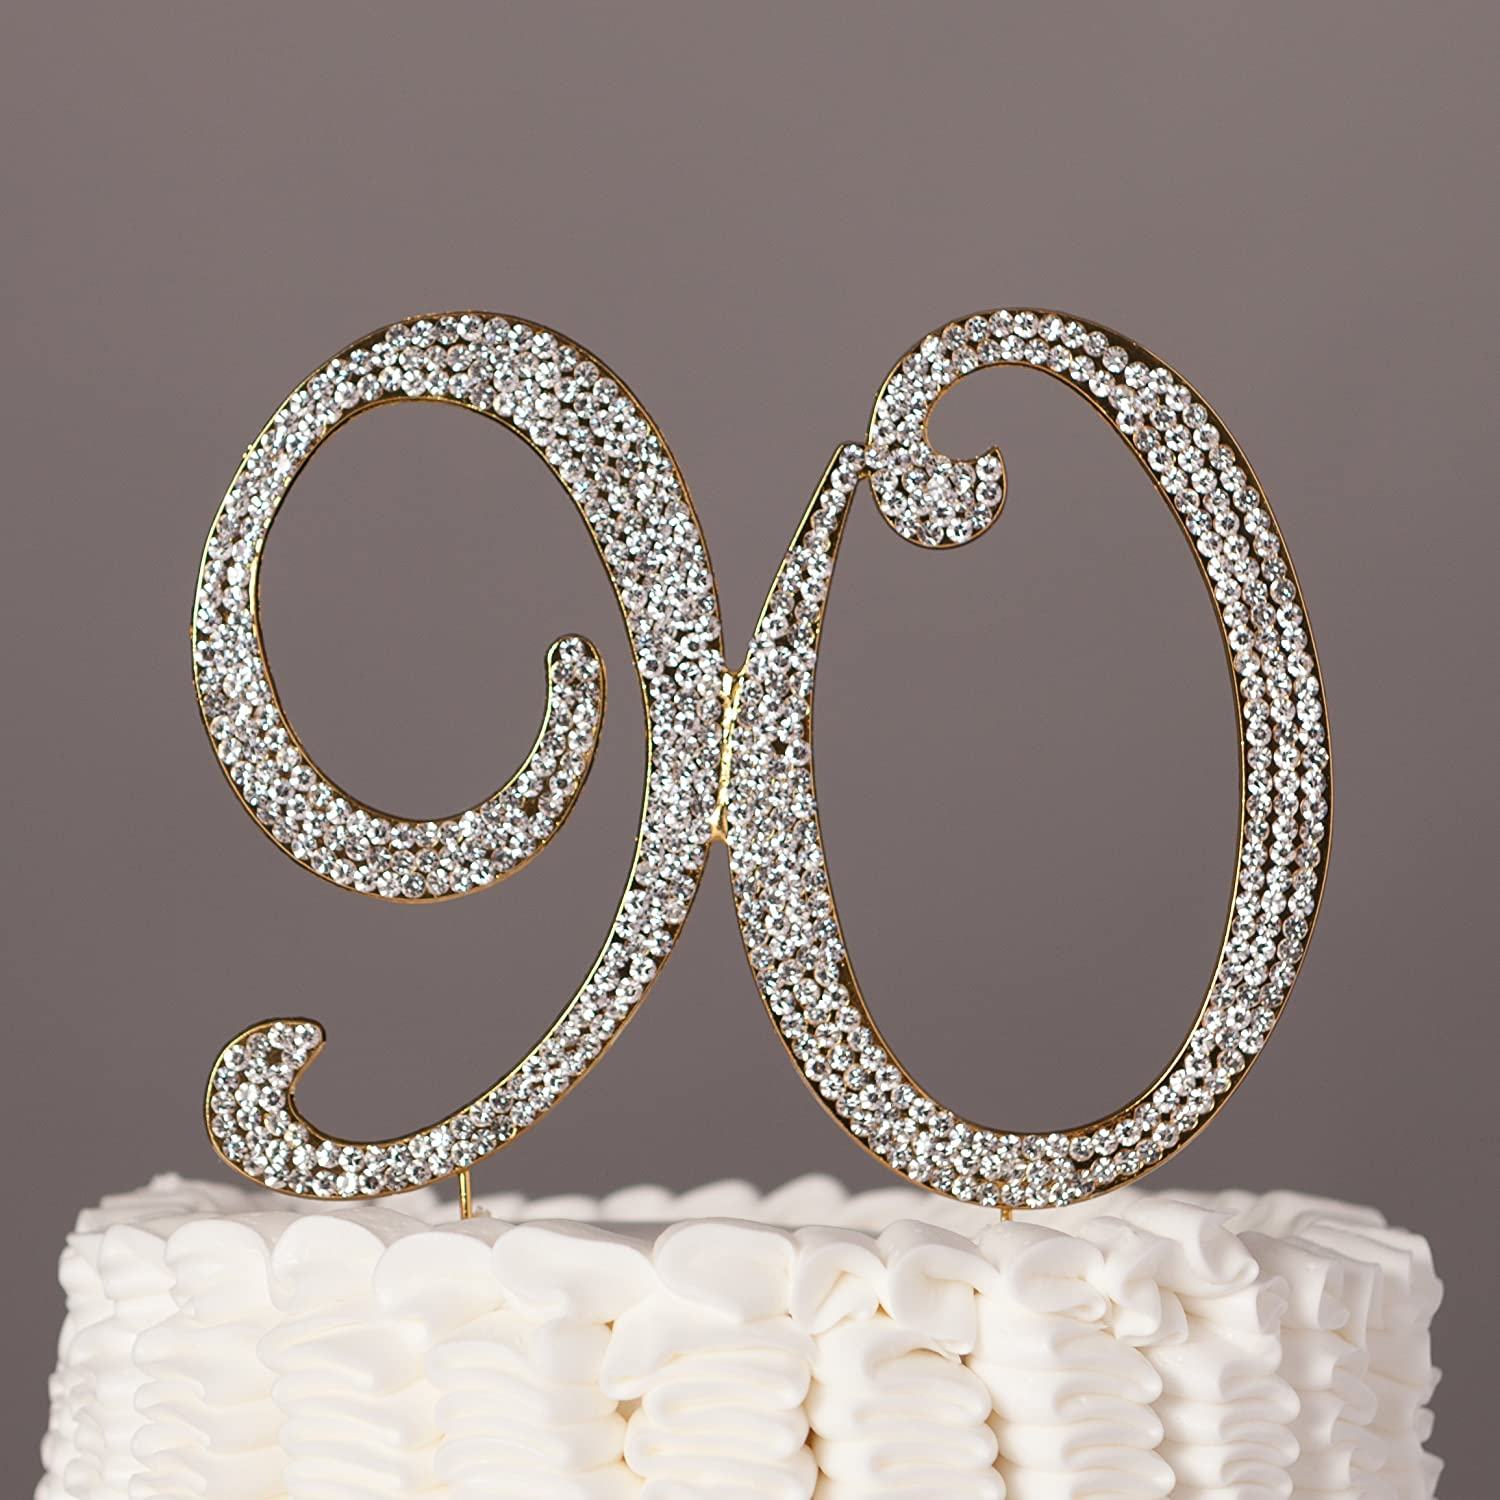 Amazoncom Ella Celebration 90 Cake Topper for 90th Birthday